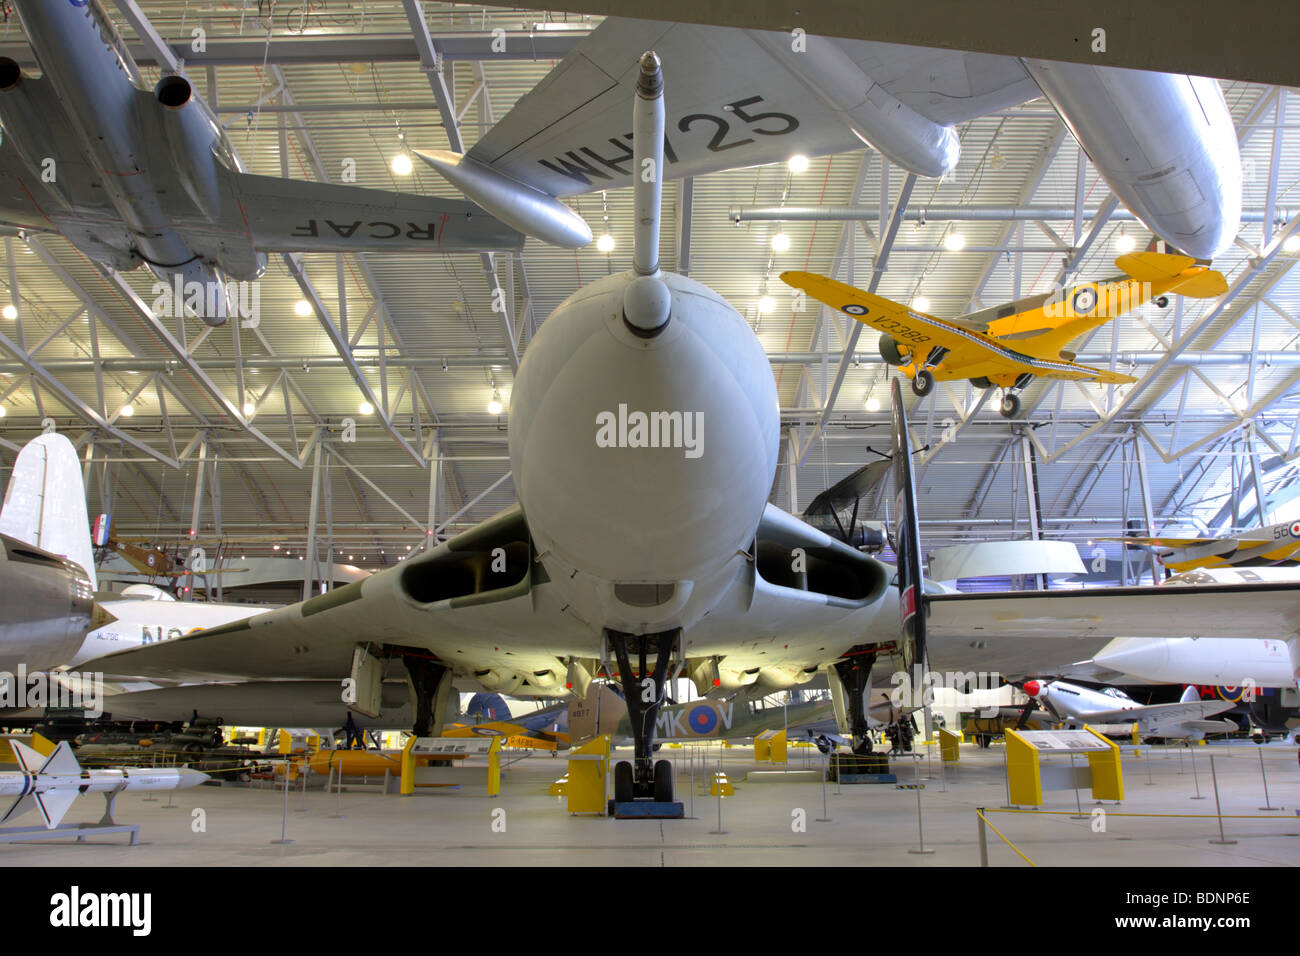 The Avro Vulcan 698 B2 strategic bomber,currently displayed in the Air Space Hangar,Imperial War Museum Duxford,England. - Stock Image